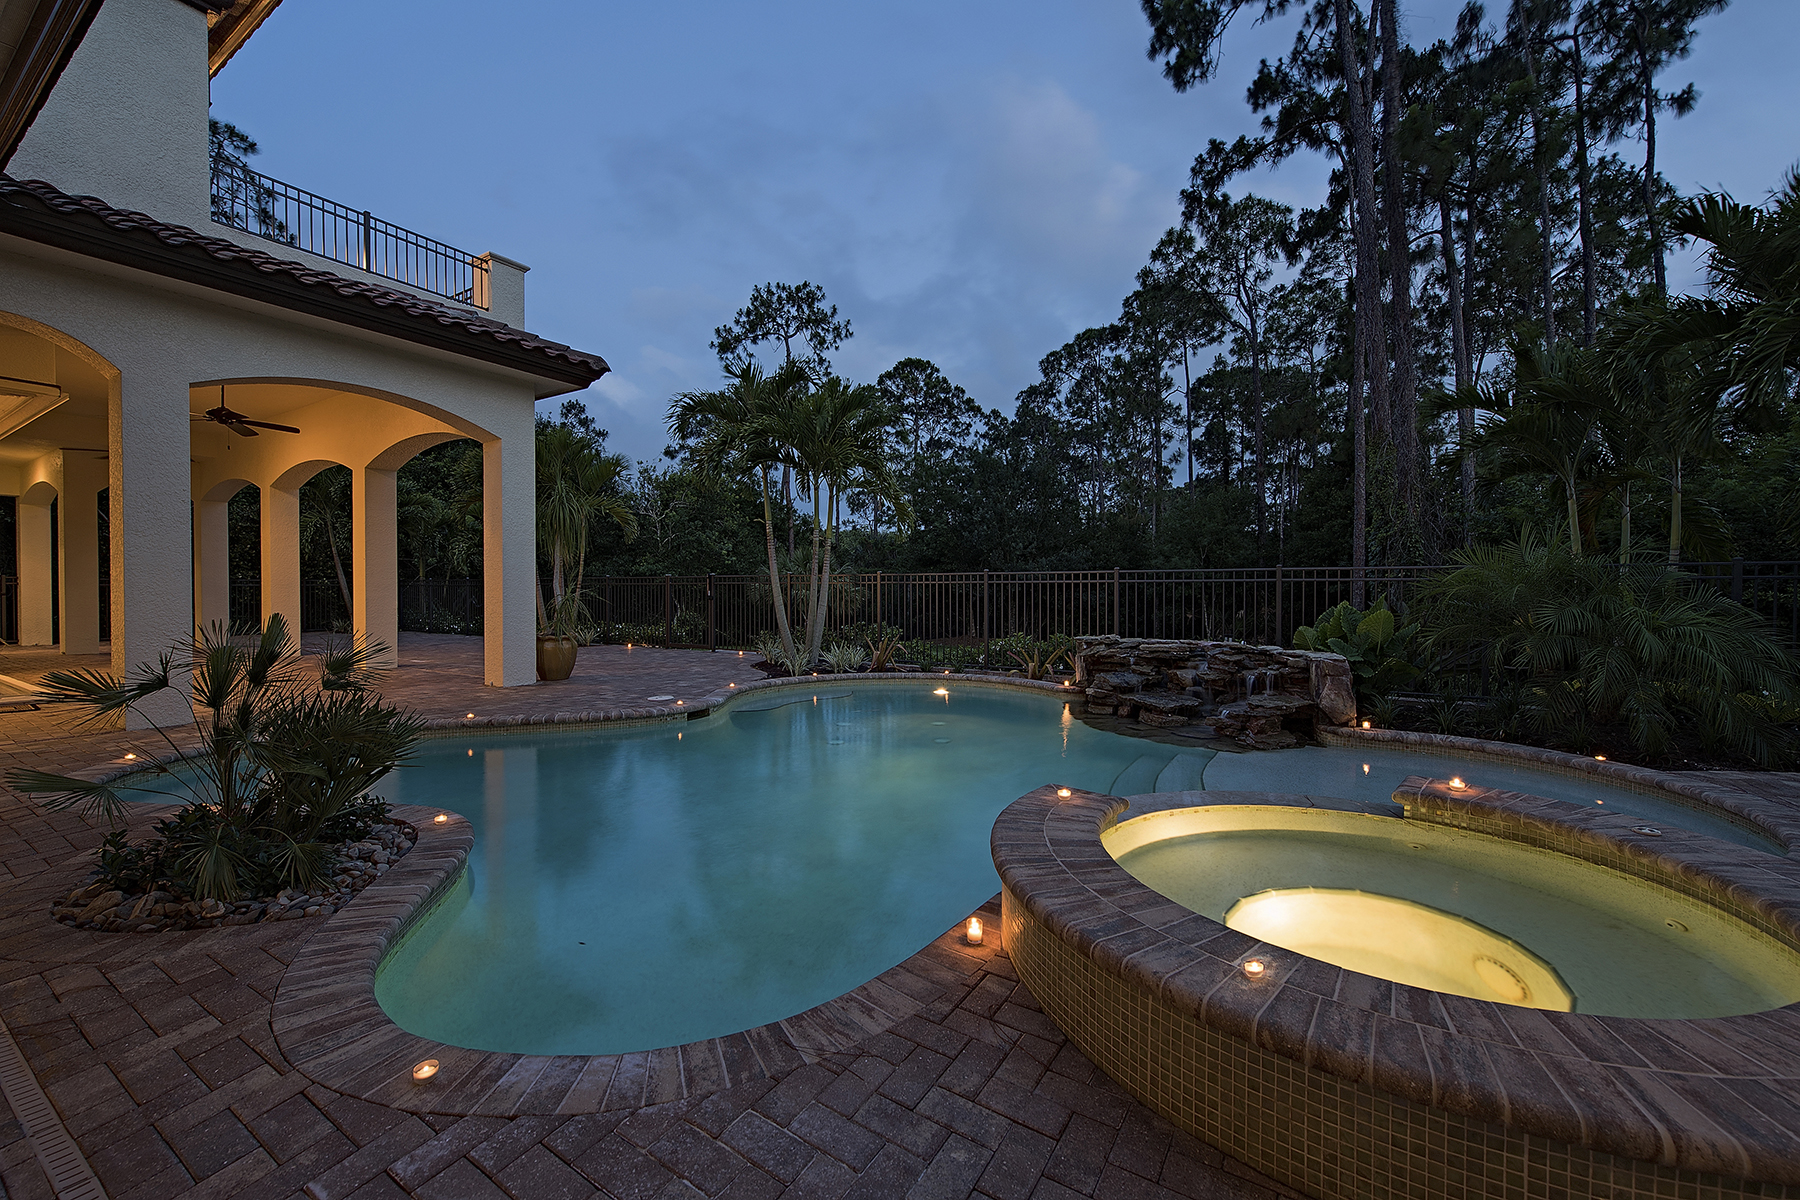 Property For Sale at 8719 Spikerush Ln , Naples, FL 34109